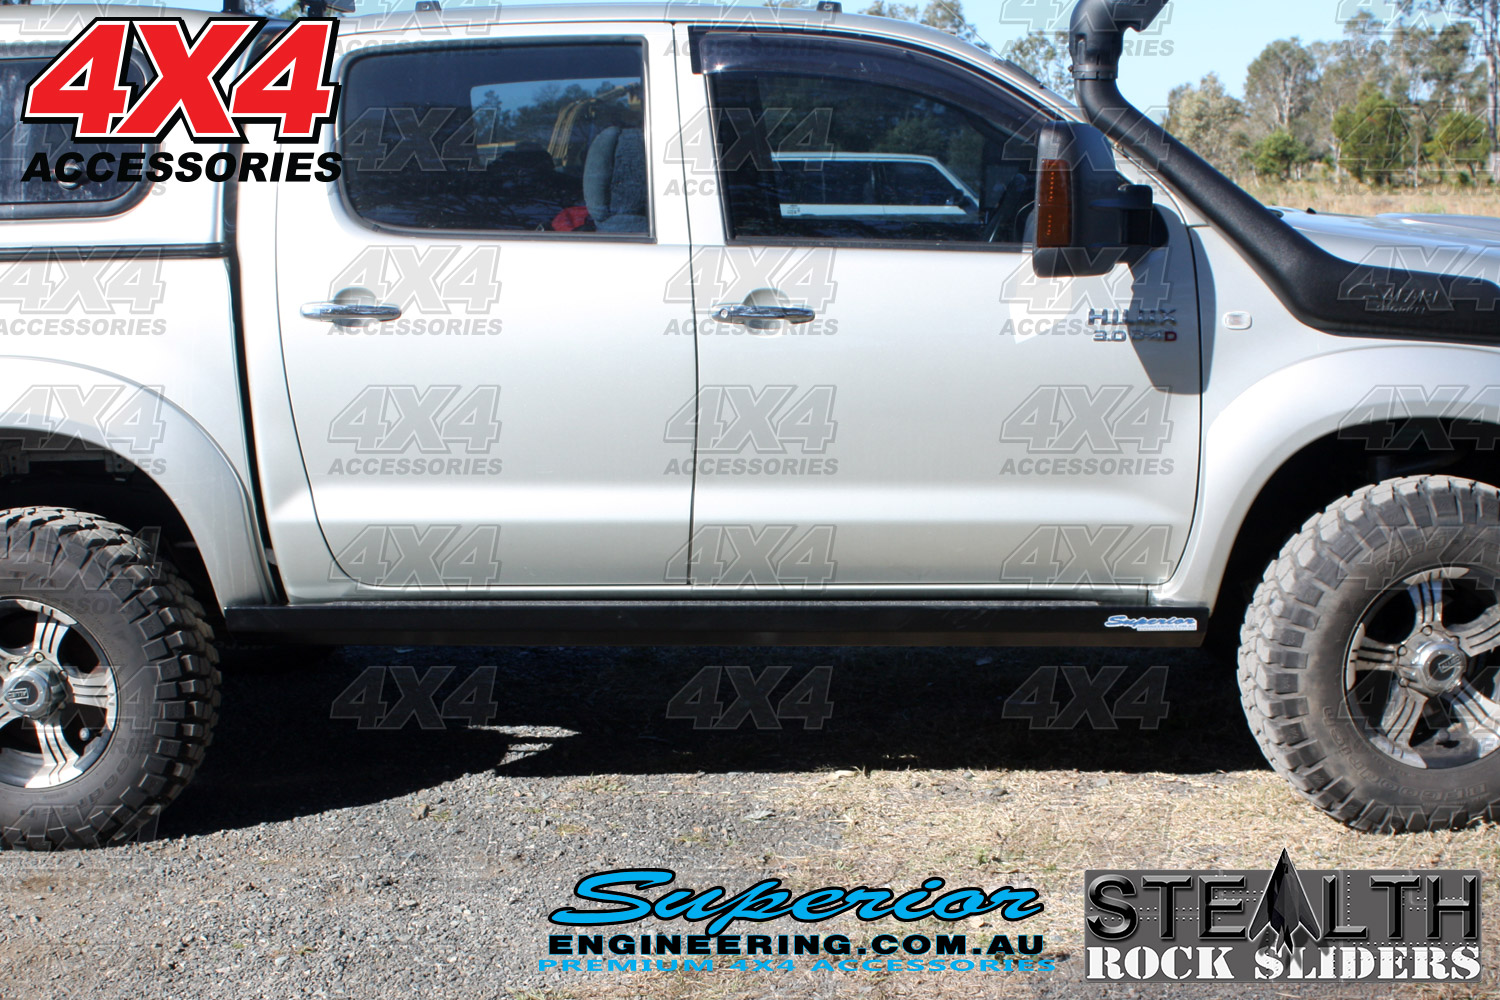 Toyota Hilux Fitted with Stealth Rock Sliders